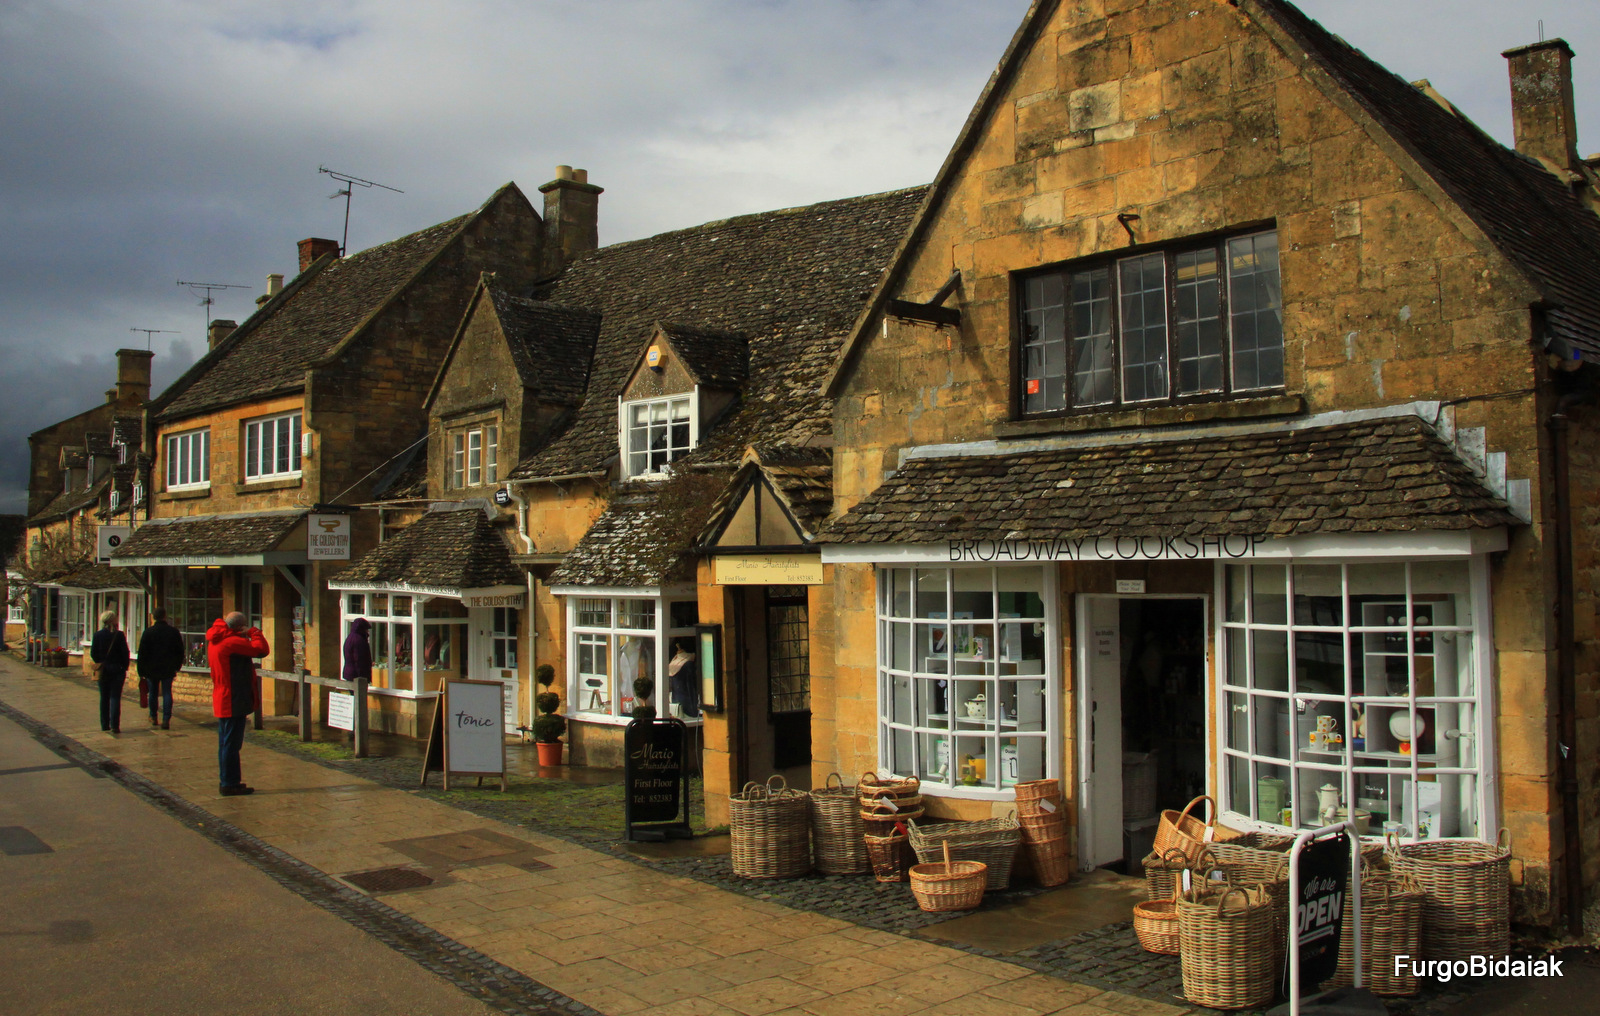 Broadway, Costwolds, Inglaterra en furgo, Furgobidaiak